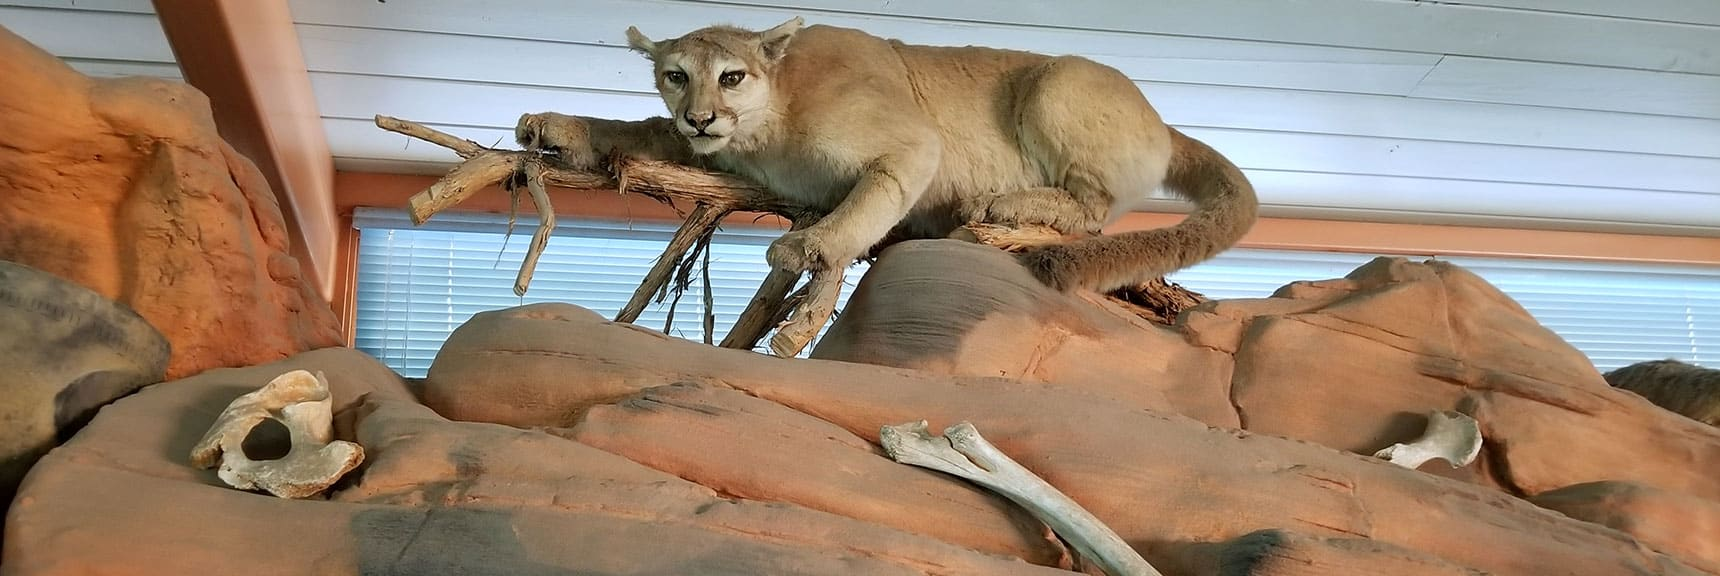 Visitor's Center Cougar Display at Valley of Fire State Park, Nevada